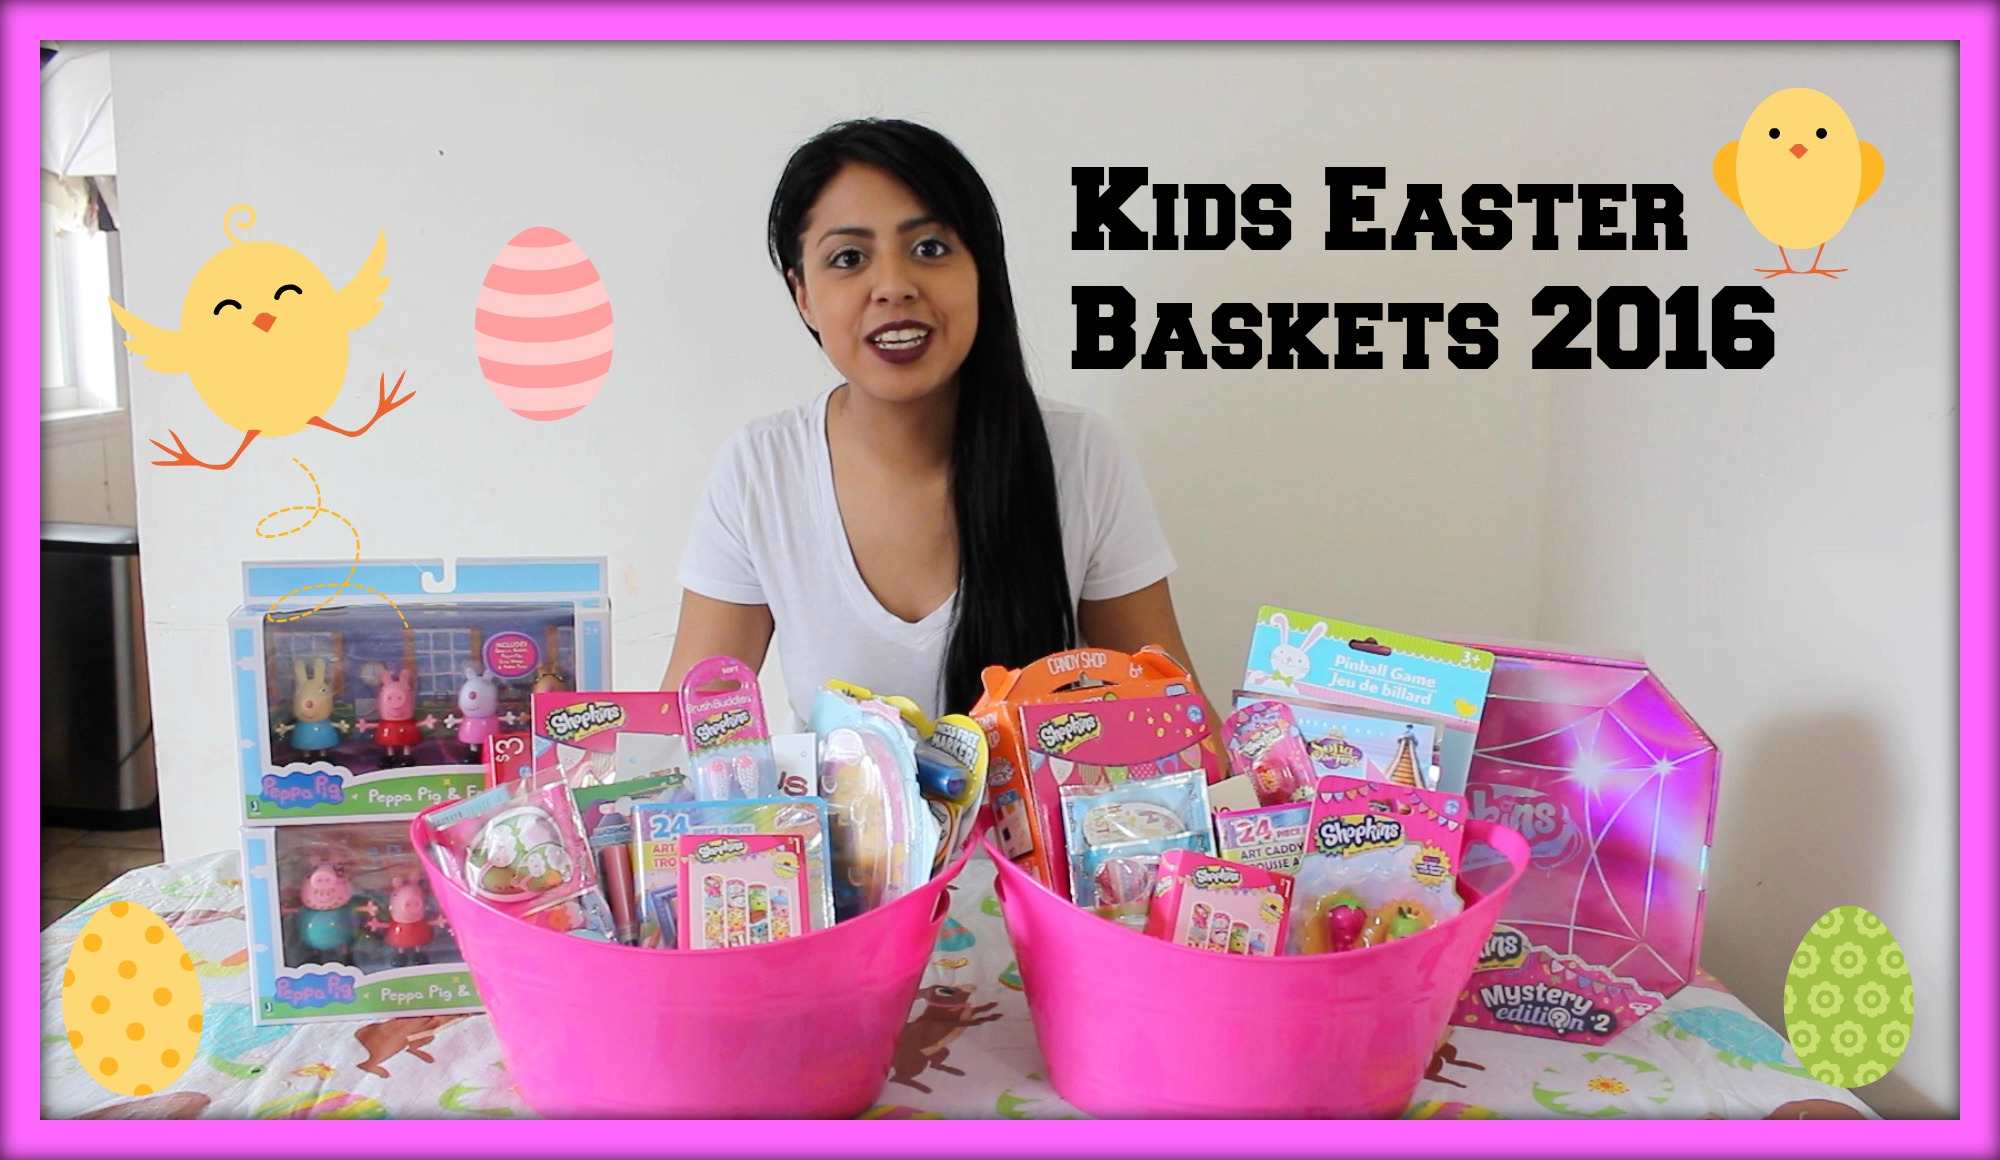 Kids Easter Basket Ideas 2016!